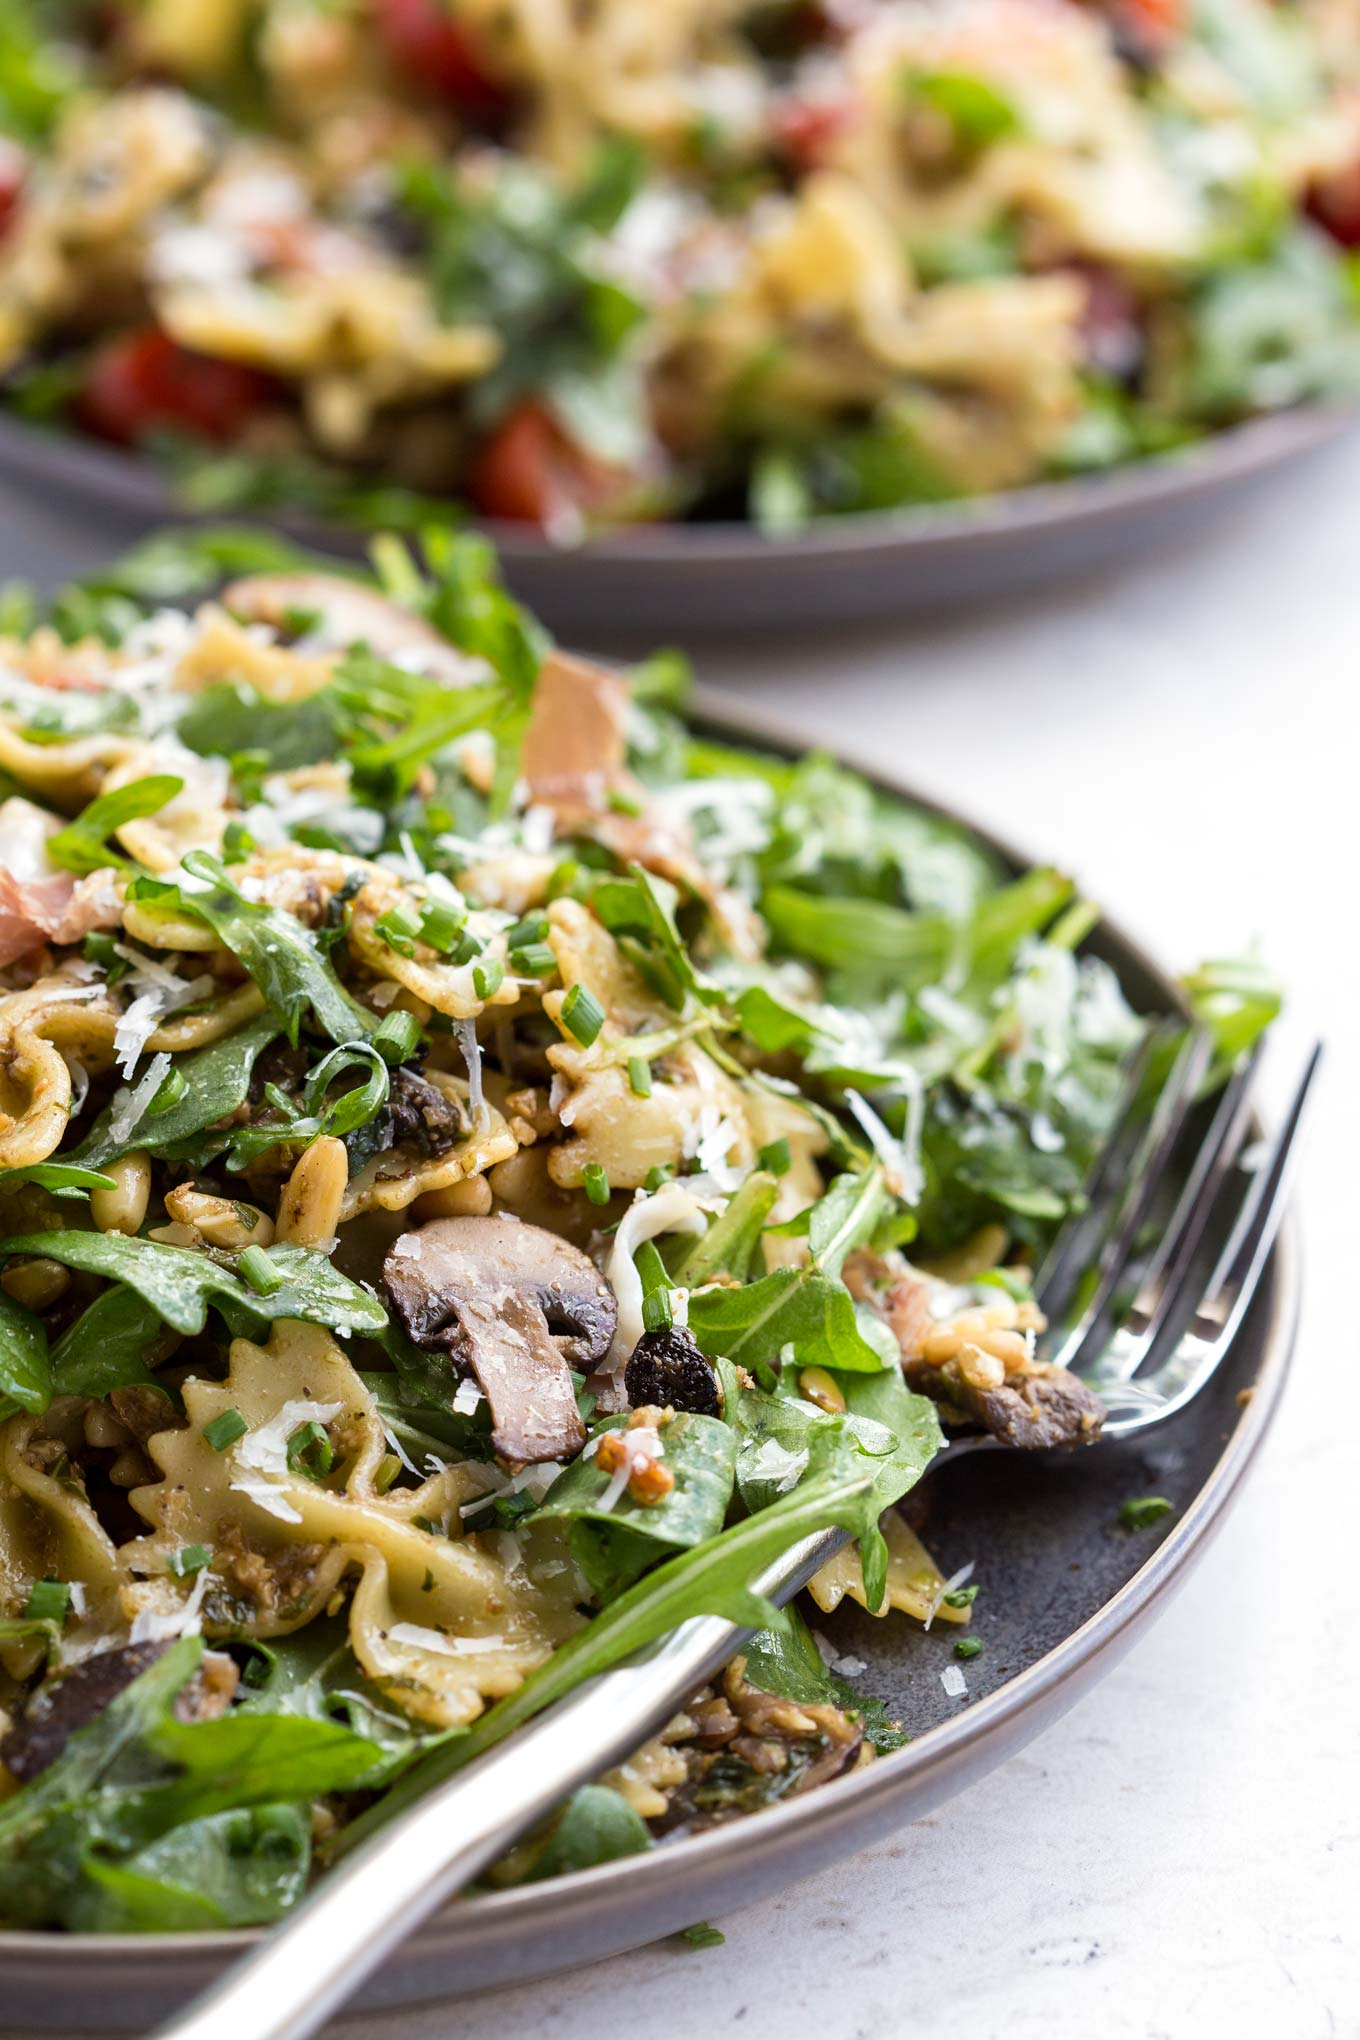 Pasta with With Homemade Black Garlic Pesto, Mushrooms, Prosciutto, Arugula and Parmesan on a Plate - 90 degree view